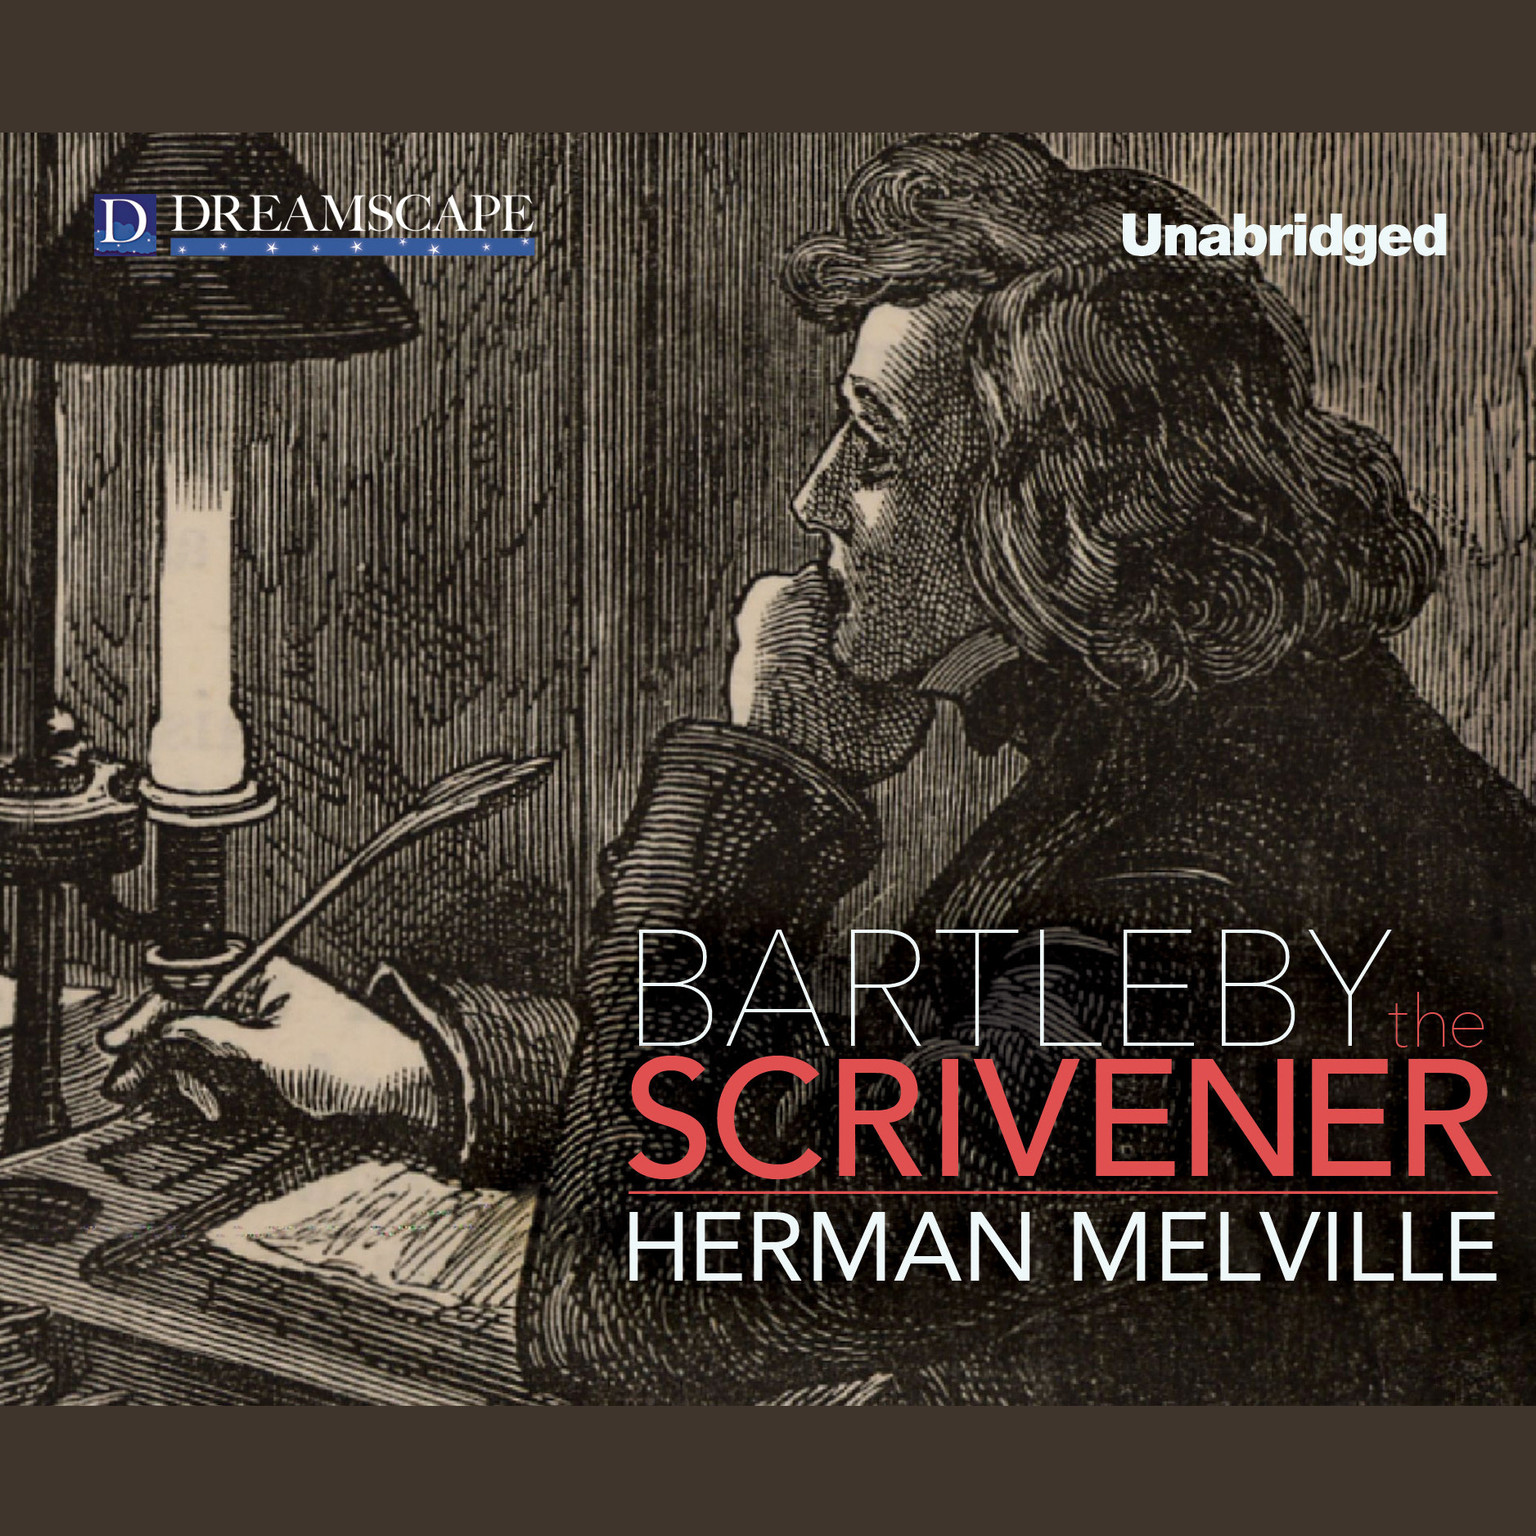 an analysis of bartleby the scrivener by herman melville Herman melville contents plot overview + summary & analysis analysis bartleby the scrivener is one of melville's most famous stories bartleby's initial response of i would prefer not to, seems innocent at first.